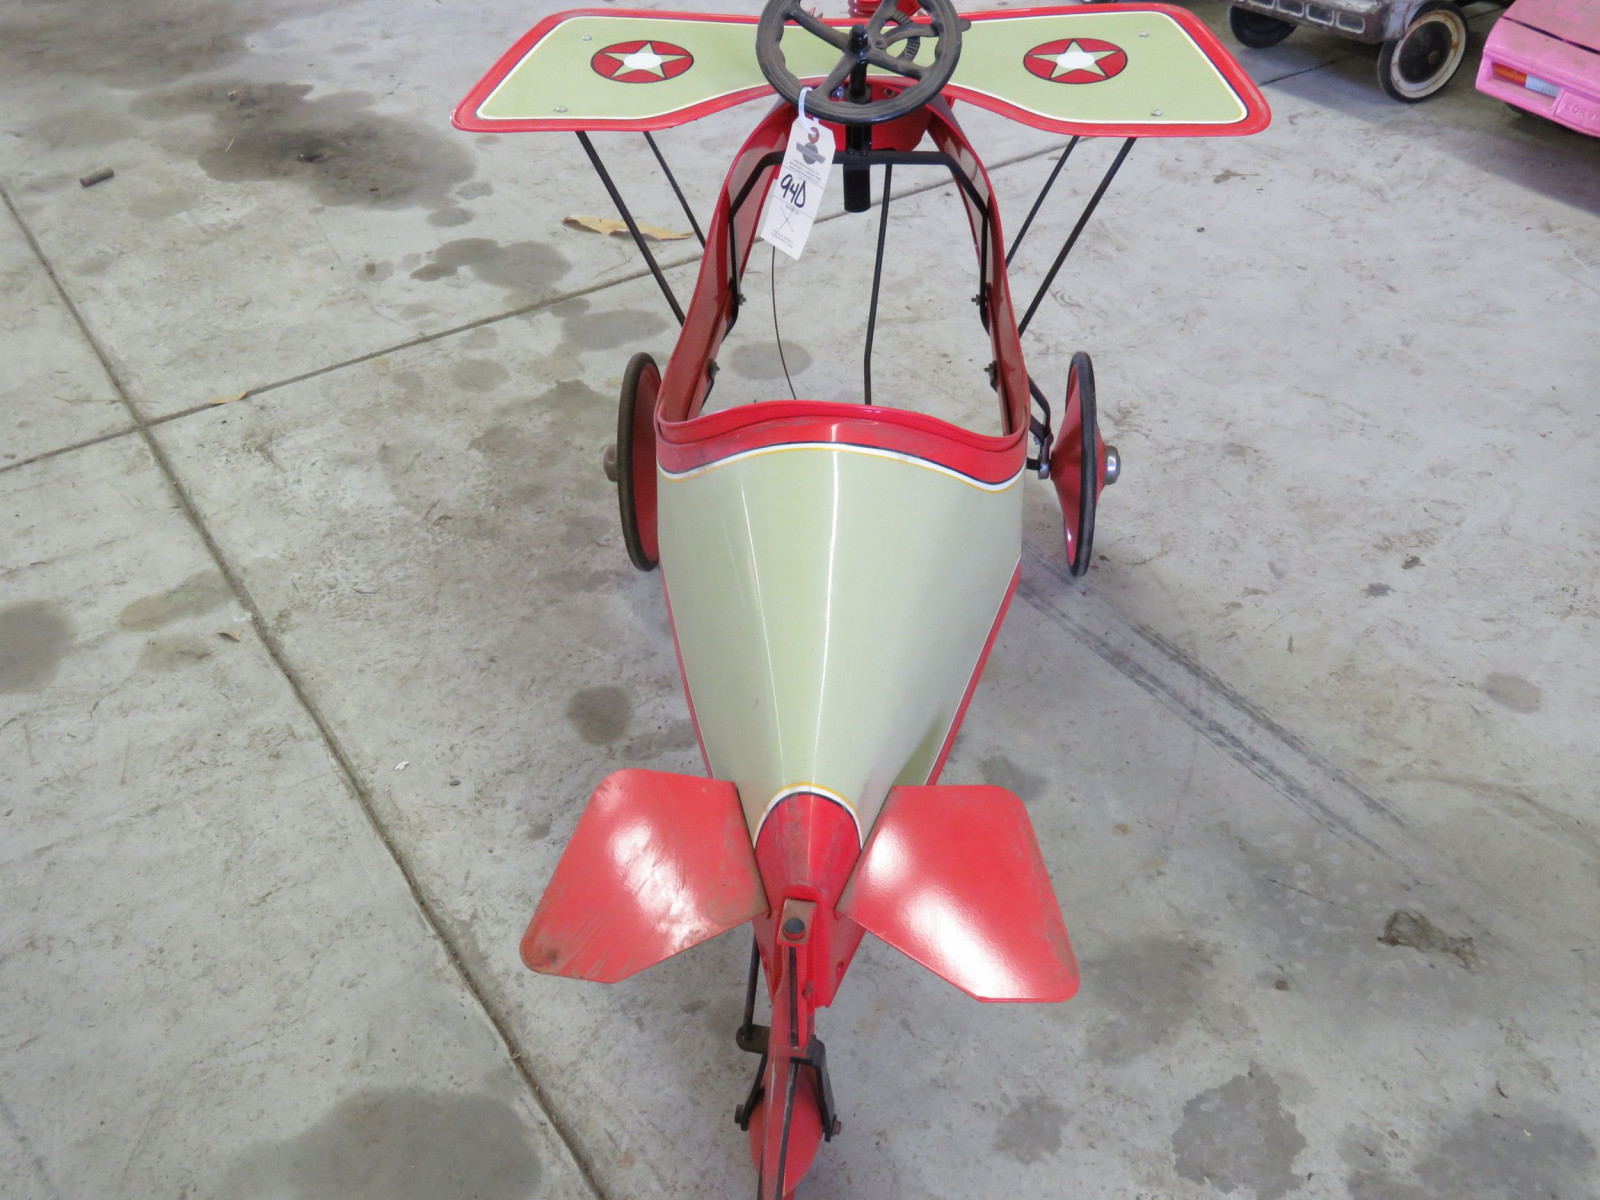 Homemade Spirit of St. Louis Pedal Airplane - Image 4